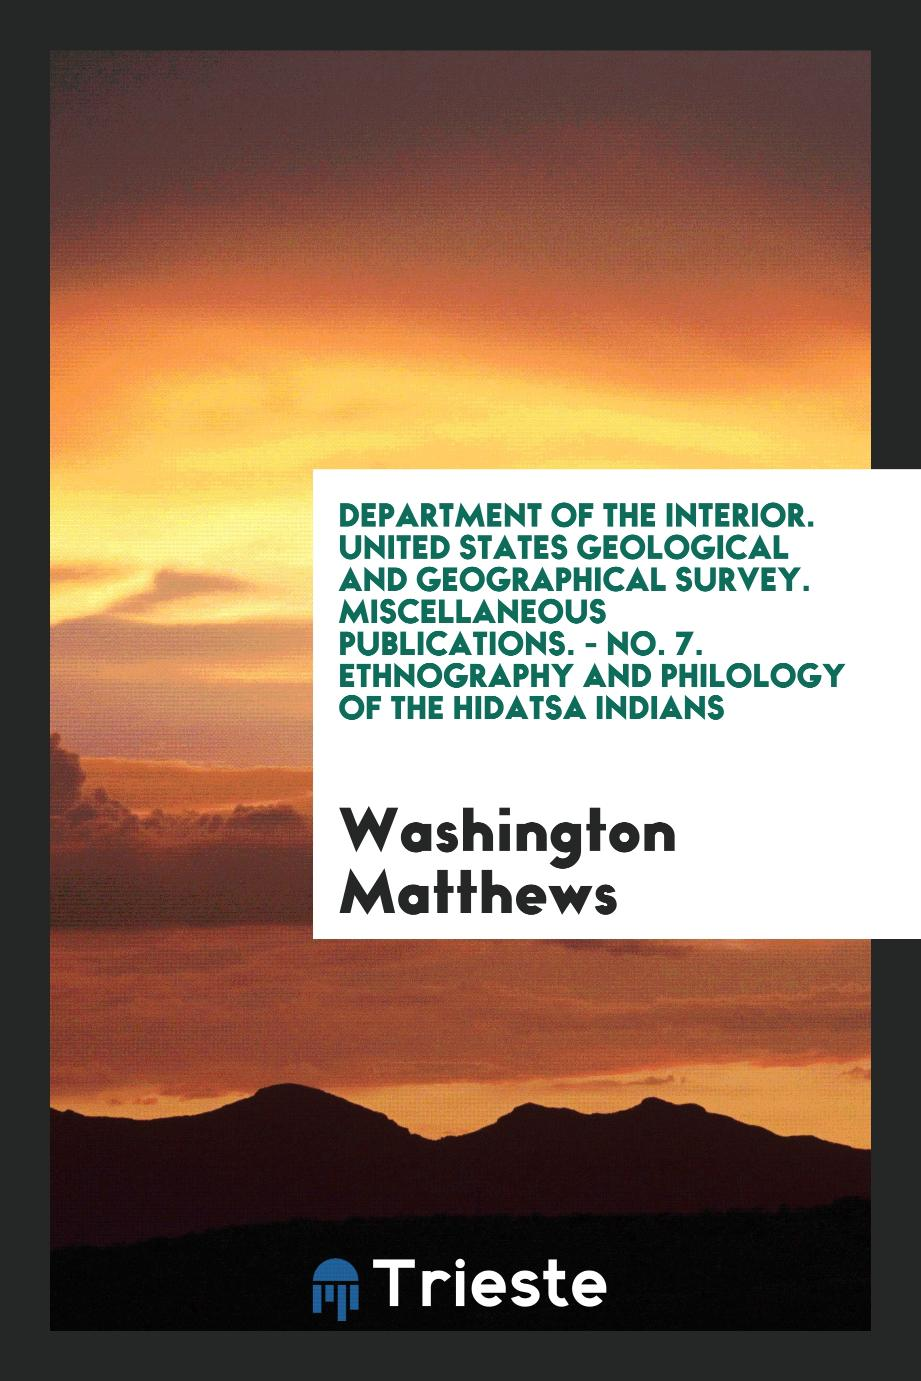 Department of the Interior. United States Geological and Geographical Survey. Miscellaneous Publications. - No. 7. Ethnography and Philology of the Hidatsa Indians